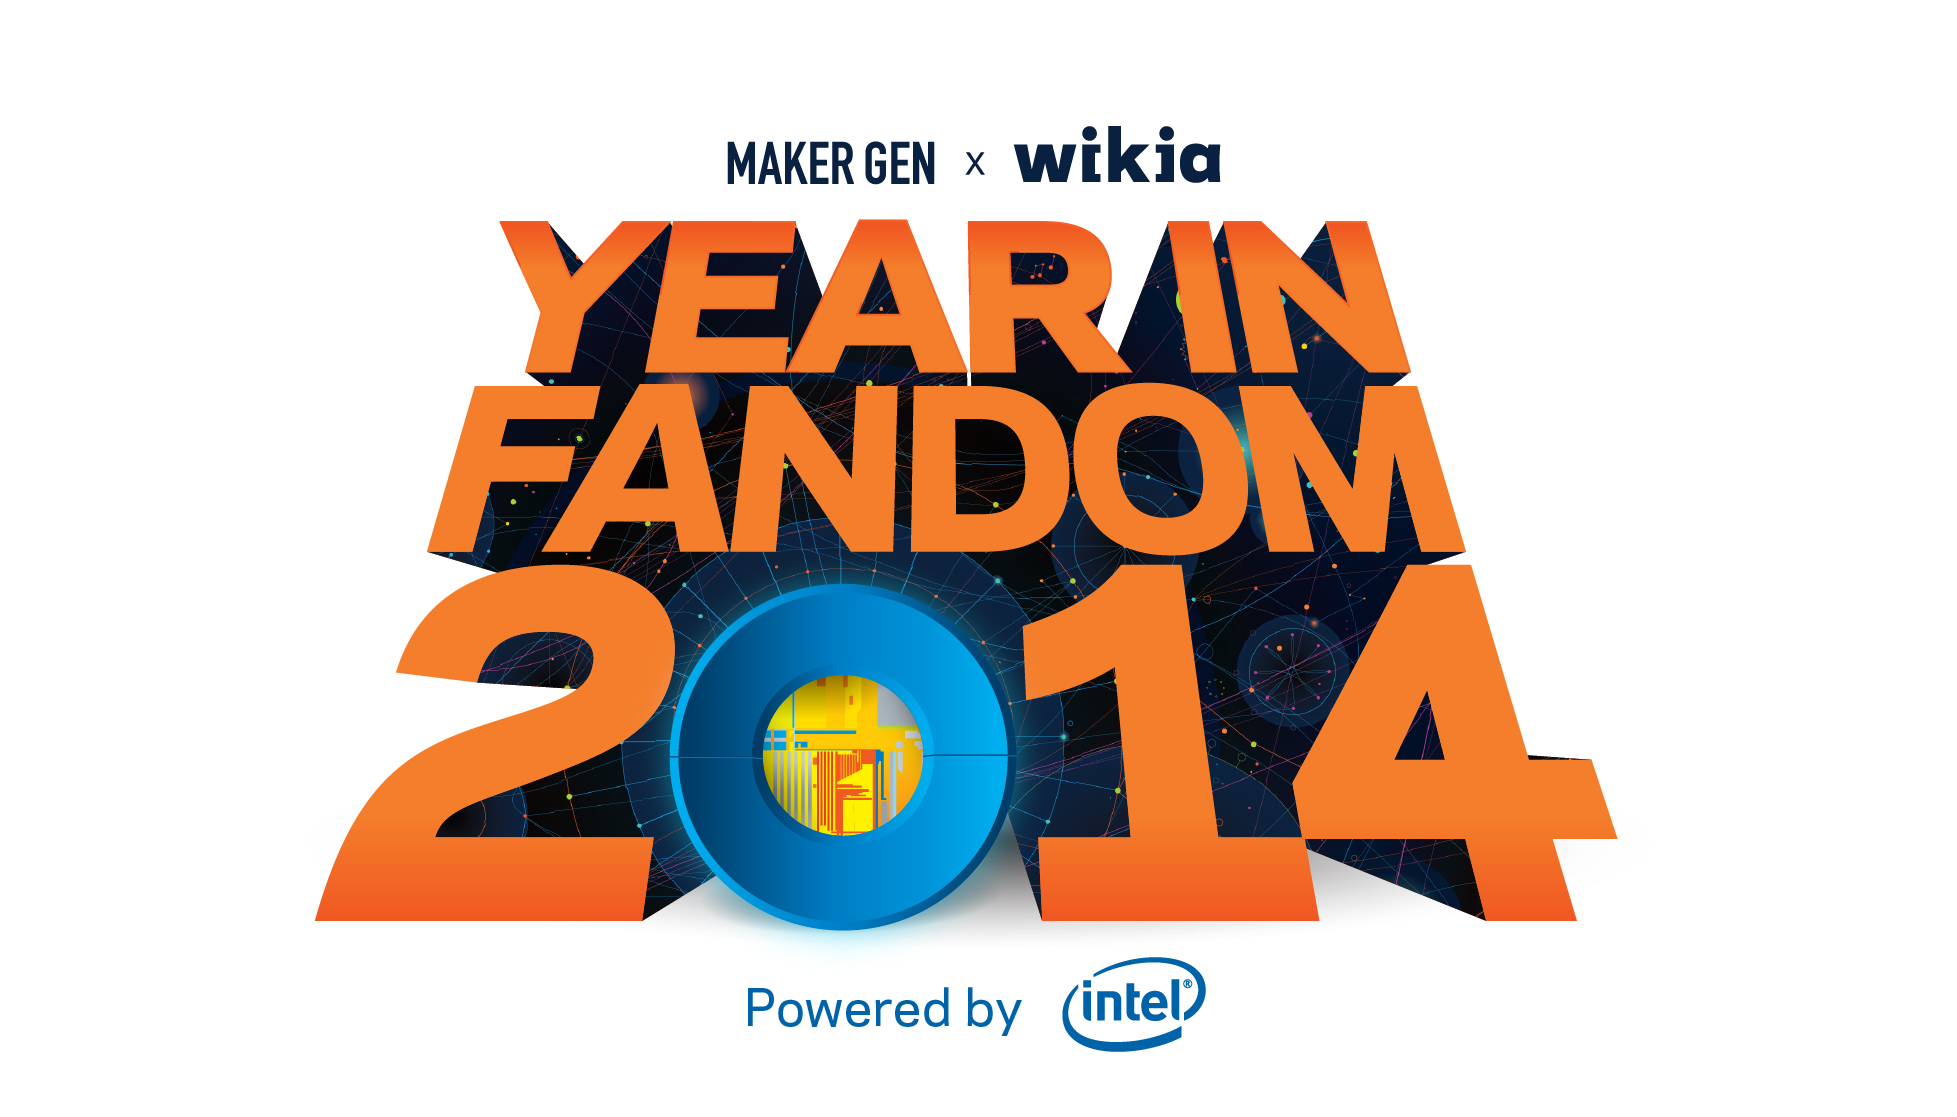 Series of the year's hottest fandoms